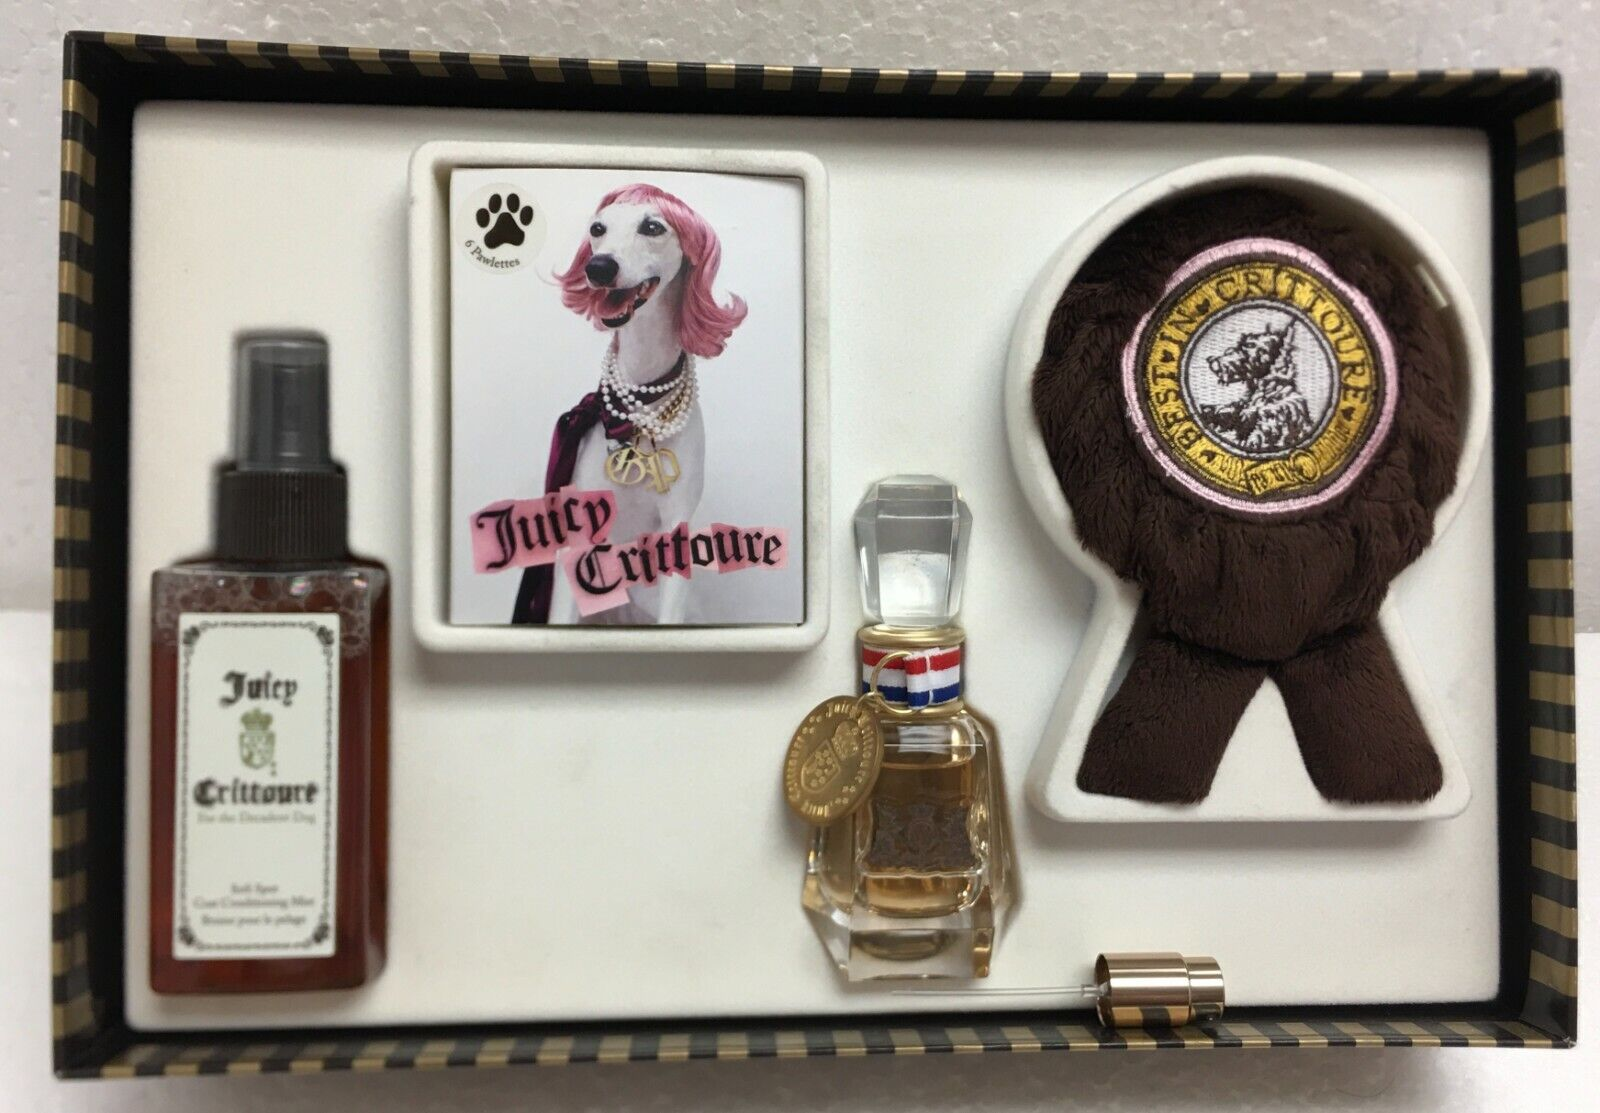 Juicy Crittoure For The Decadent Dog Gift Set 4Pcs Boxed New Discontinued  - $36.99